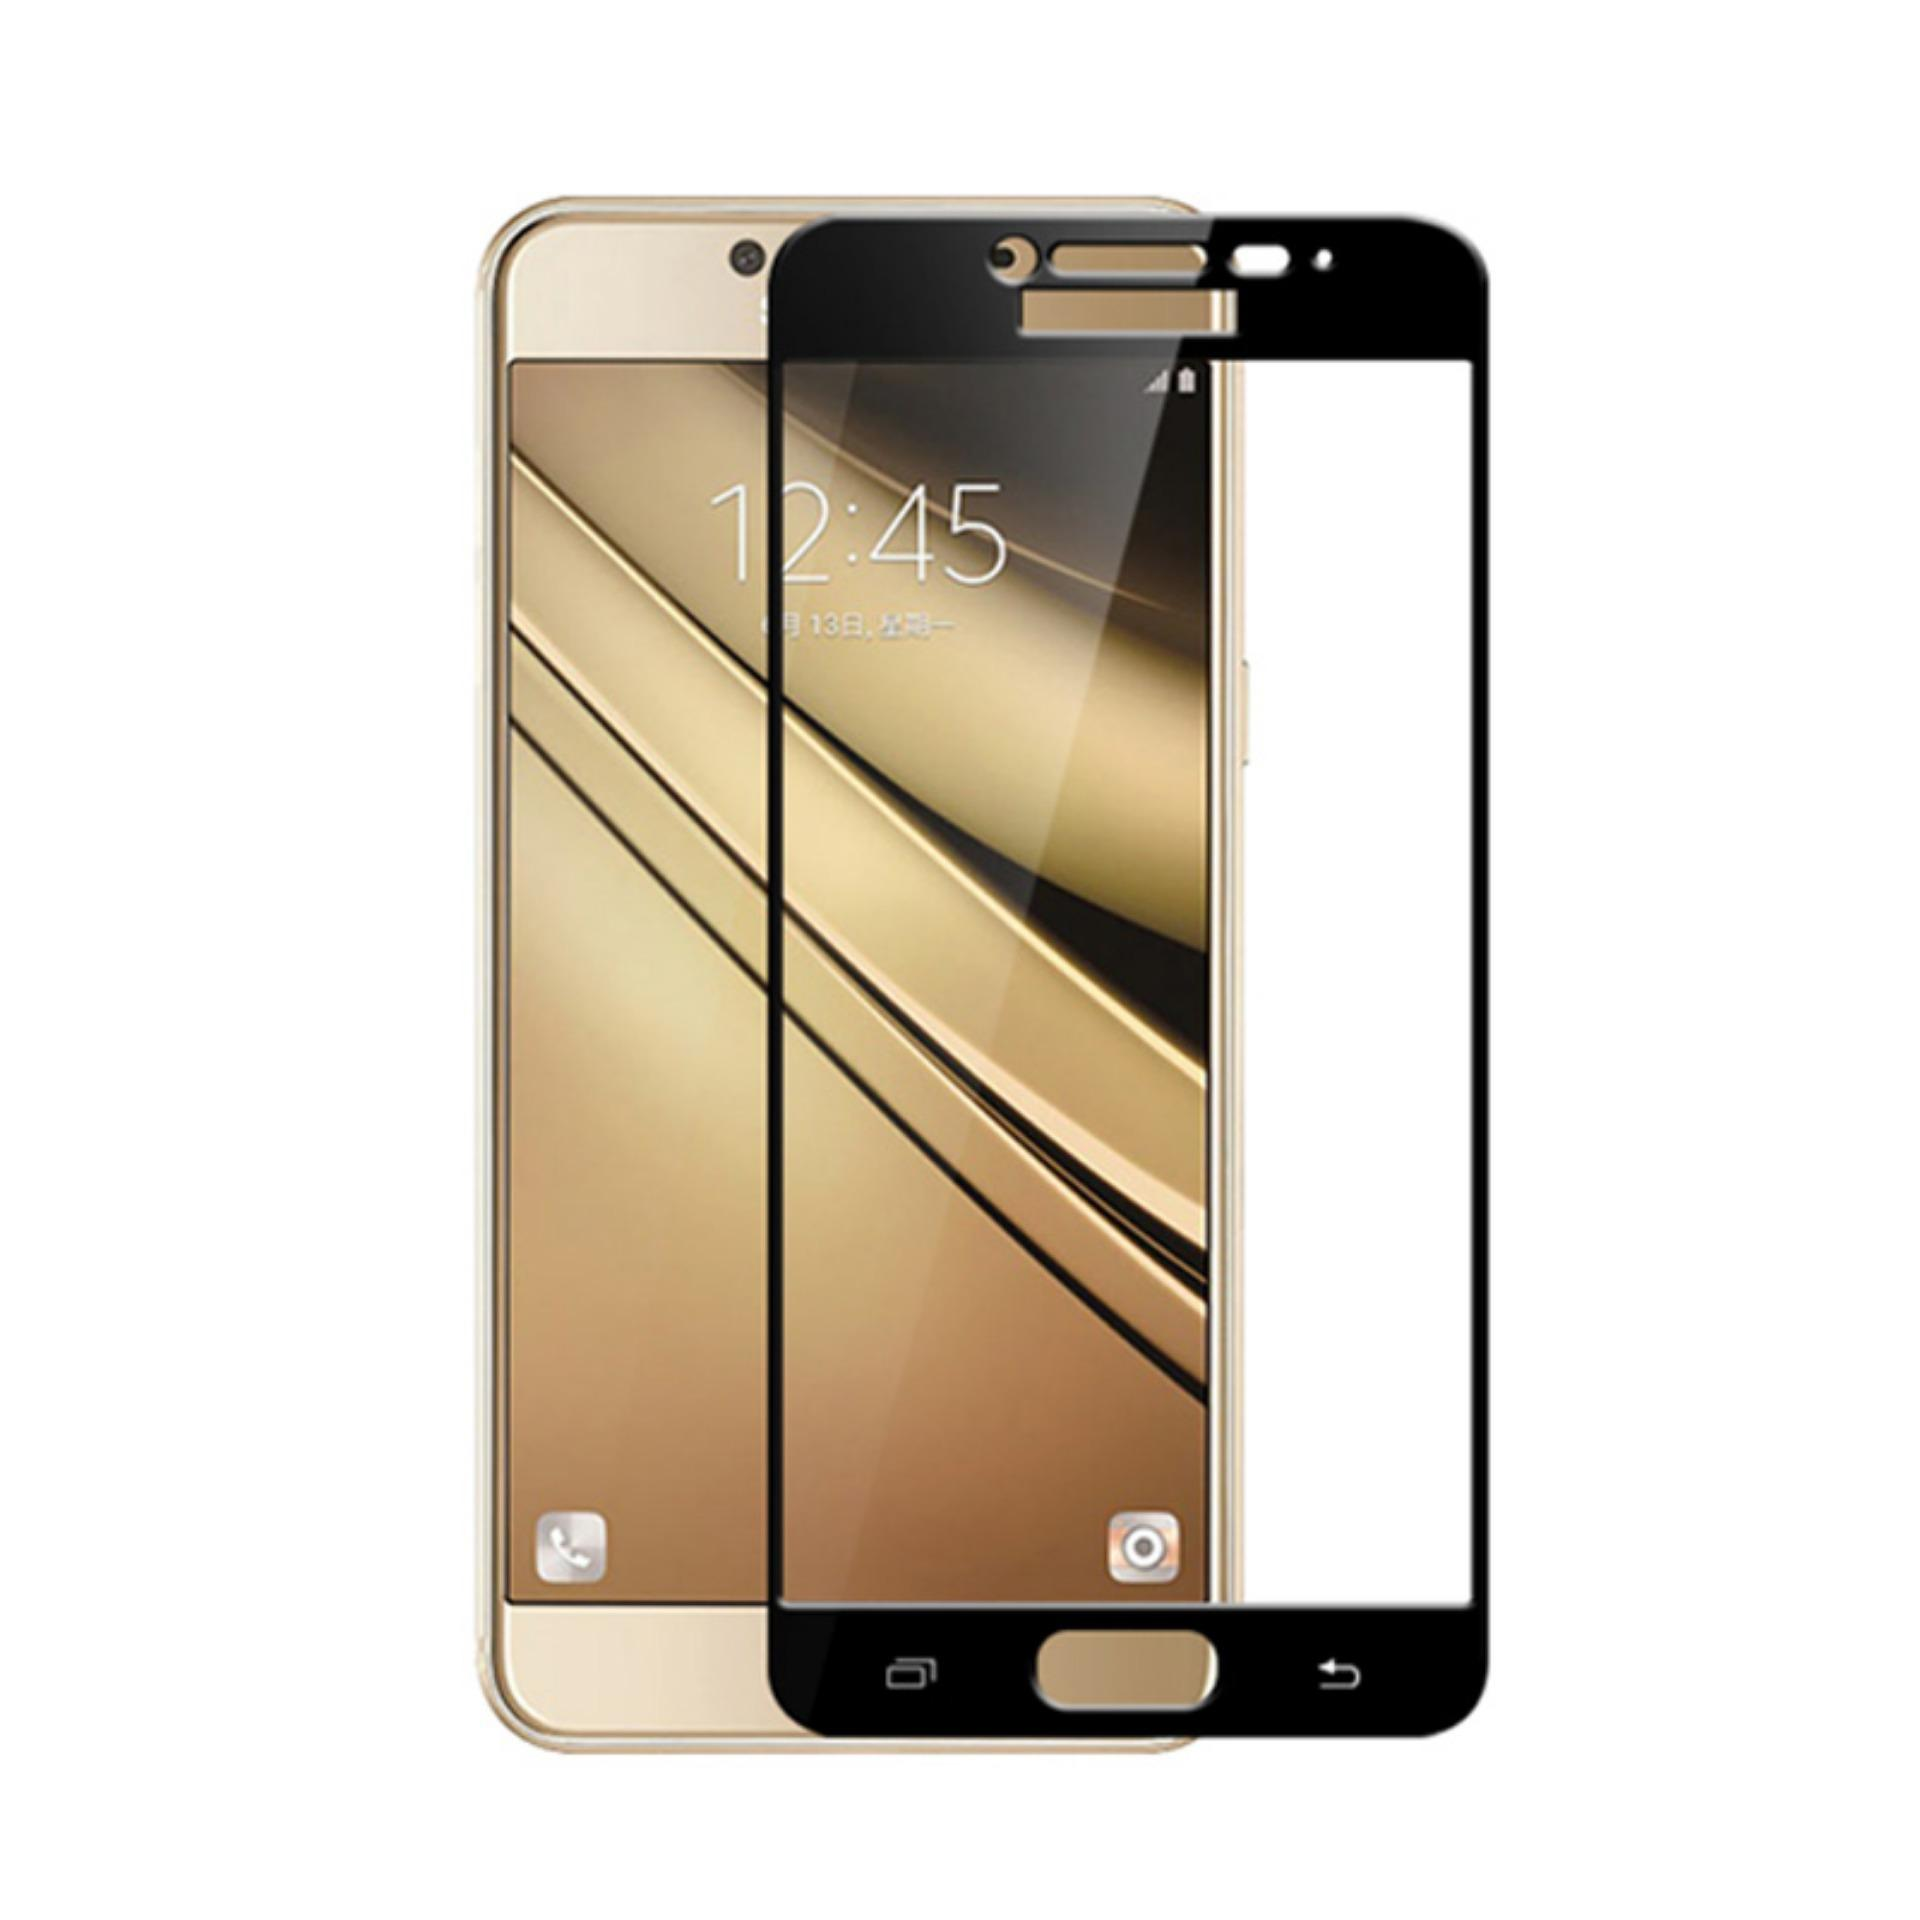 Vn Full Cover Samsung Galaxy A9 A9 Pro 4G LTE Duos